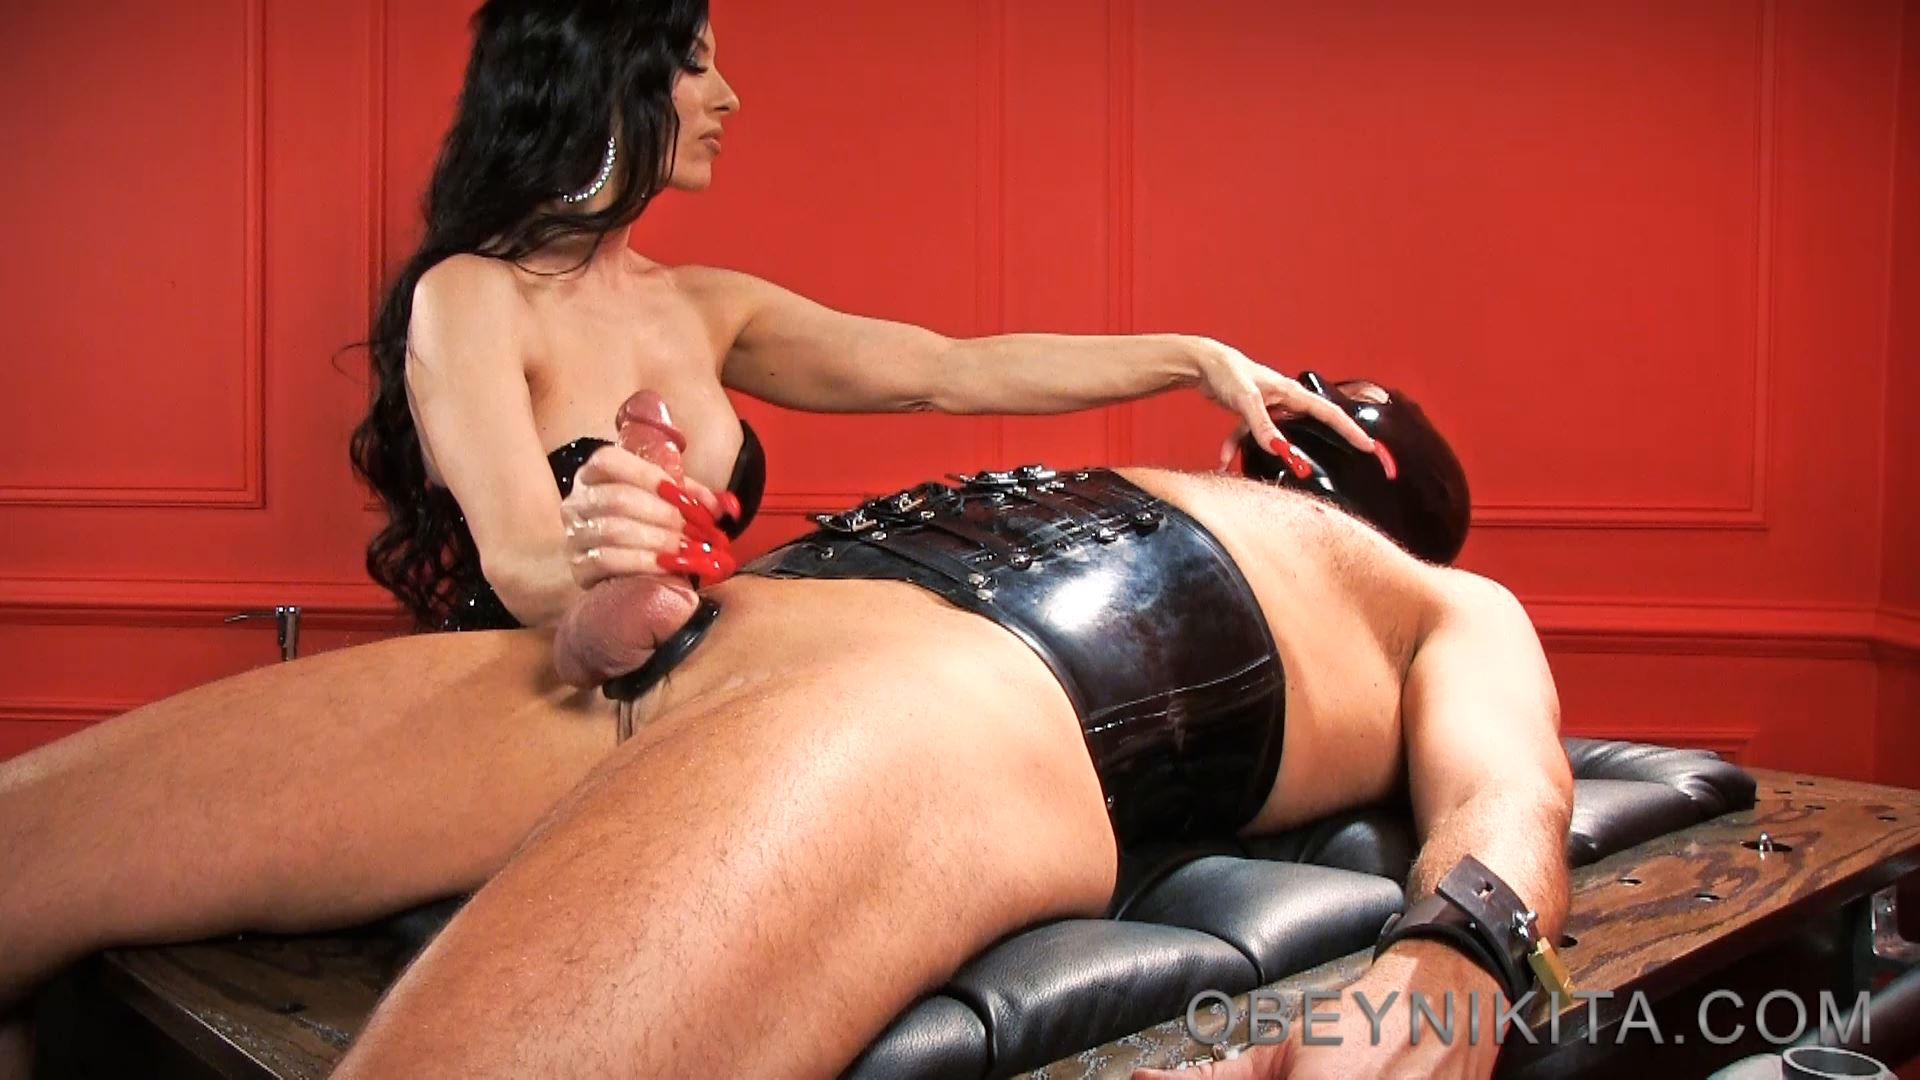 RED NAILS. FEATURING: MISTRESS NIKITA - OBEYNIKITA - FULL HD/1080p/MP4